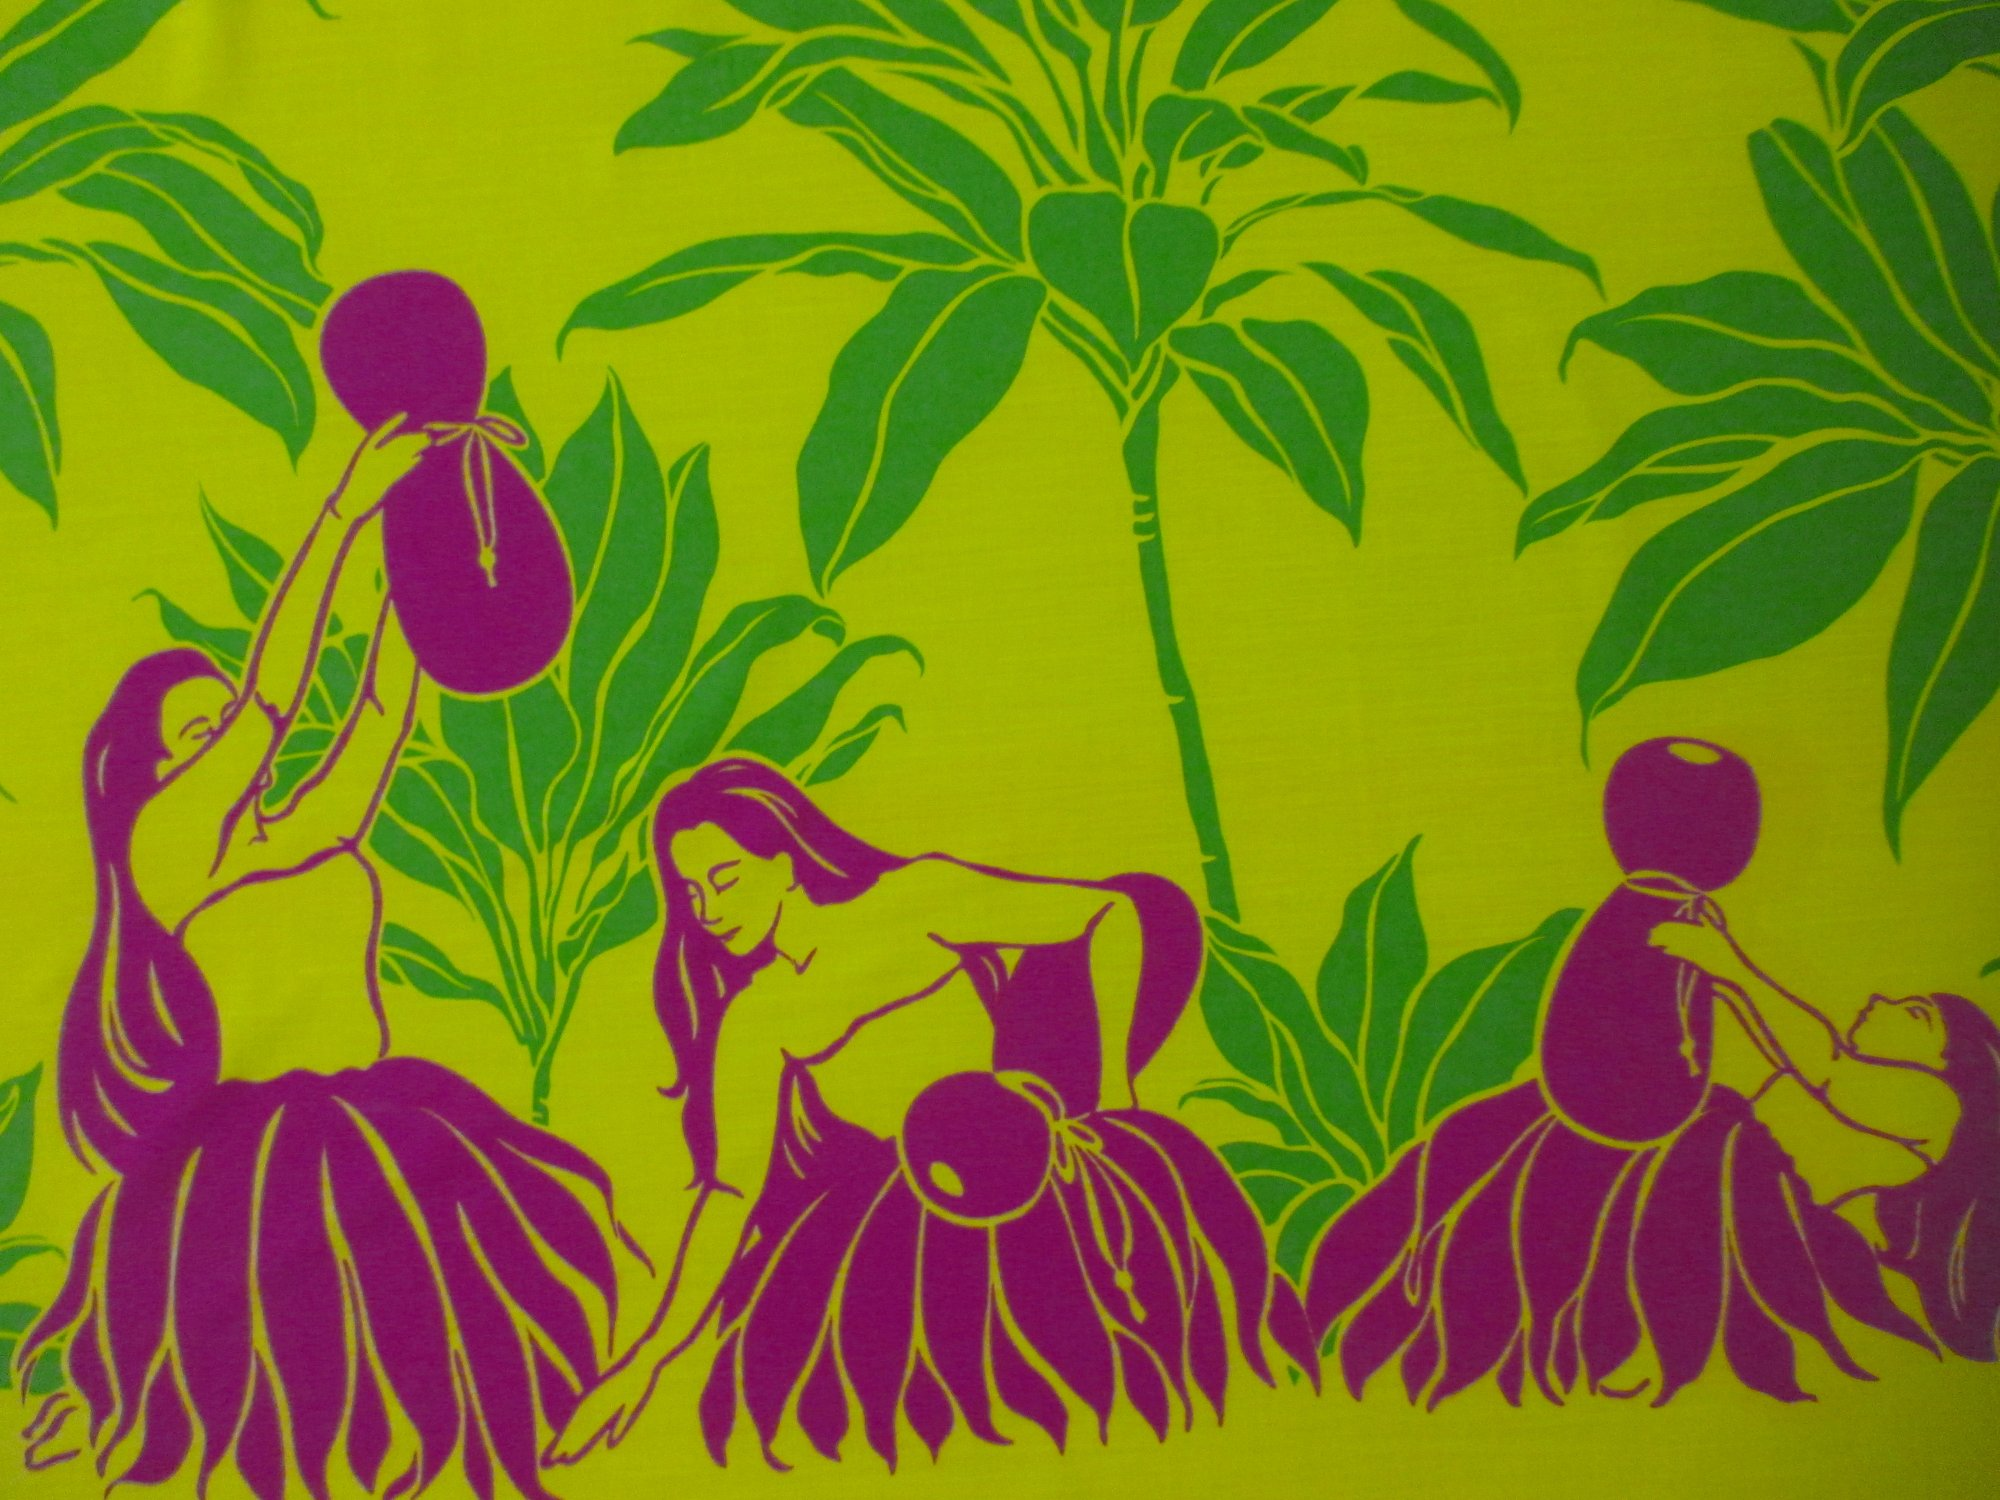 Hula Dancer Border Print - Yellow